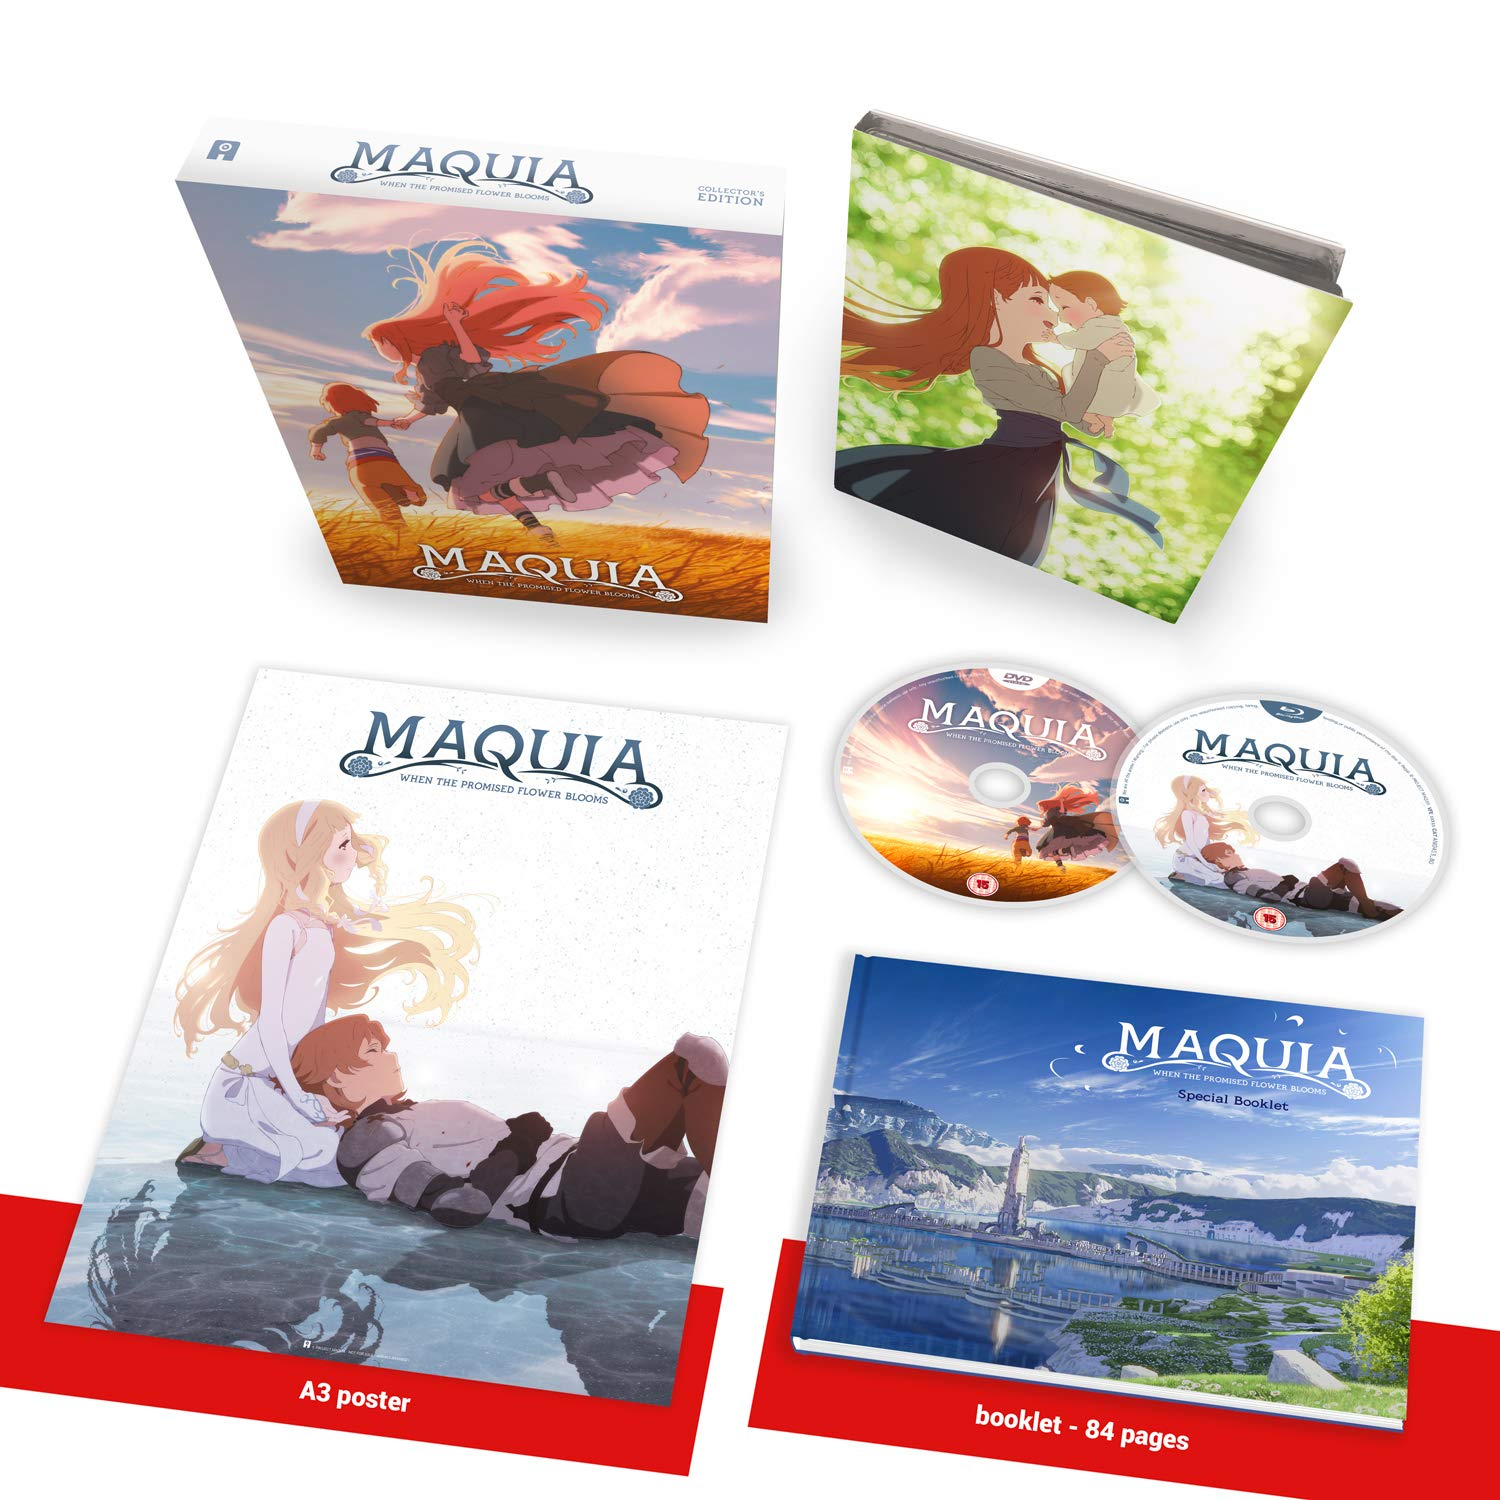 The Maquia Collector's Edition, featuring a digipack, an A3 replication of the theatrical poster, and a hardcover art book, contained in a rigid box.